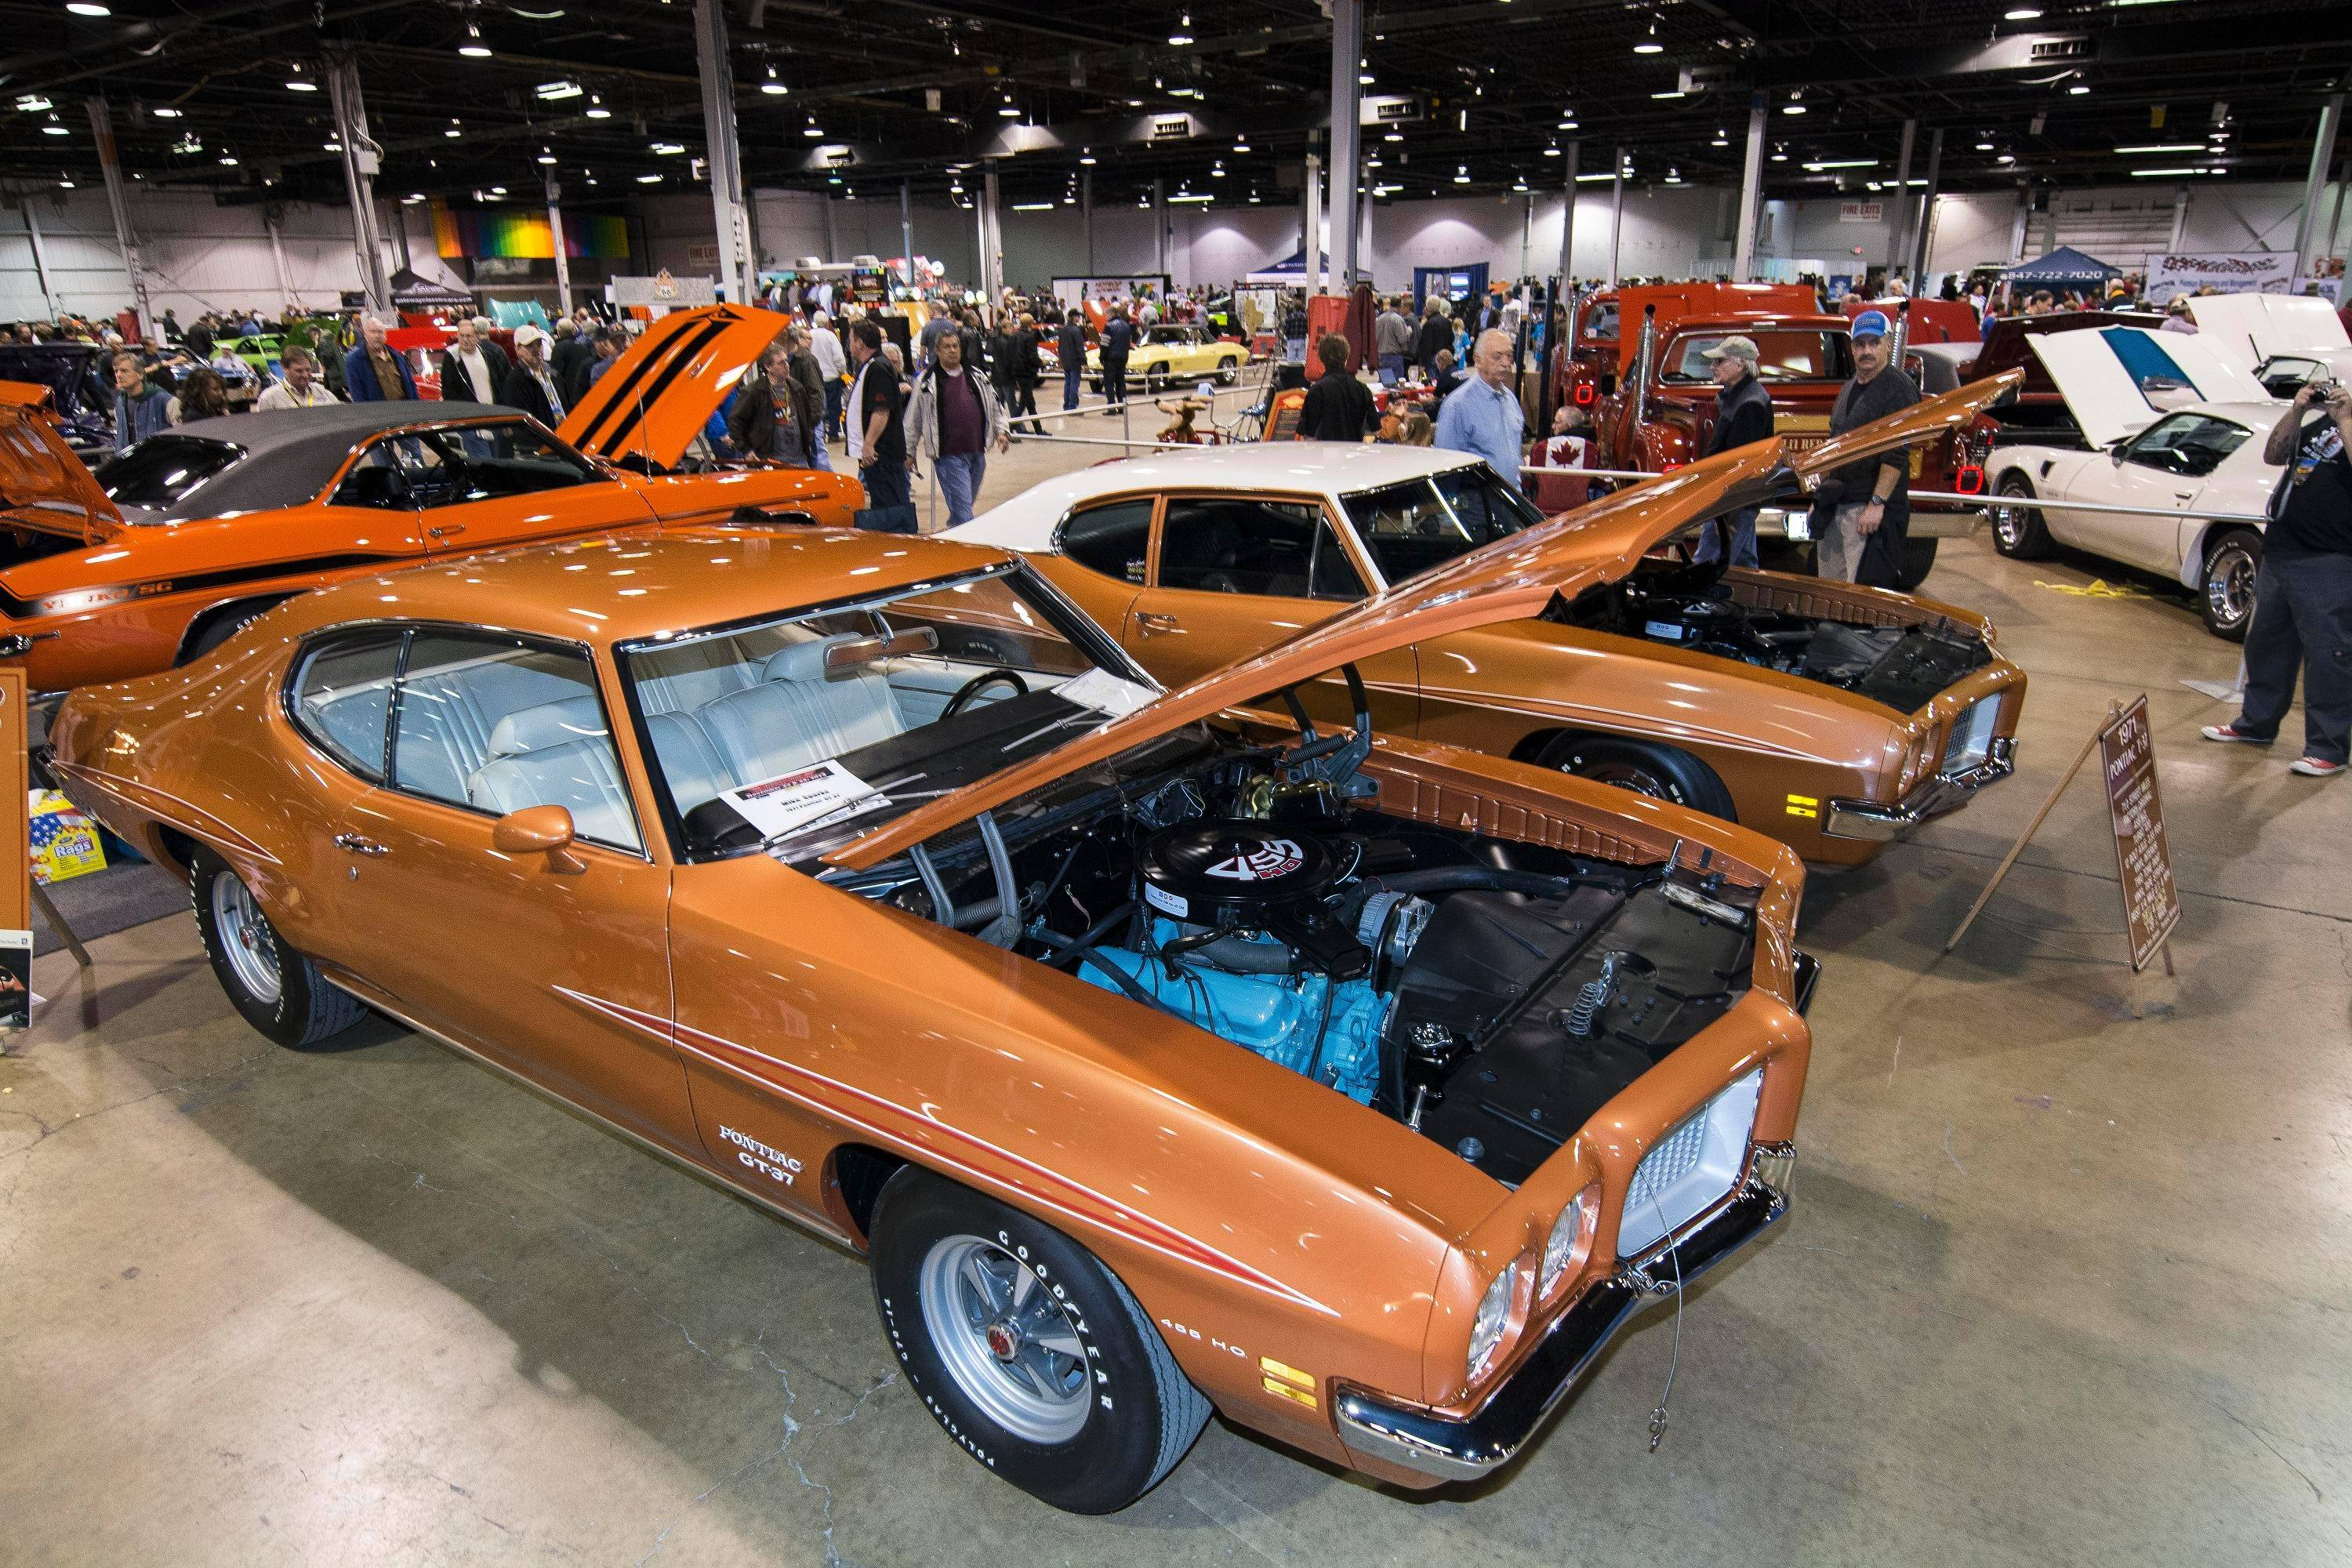 Weekend Picks Roll Into The Muscle Car Corvette Nationals In Rosemont